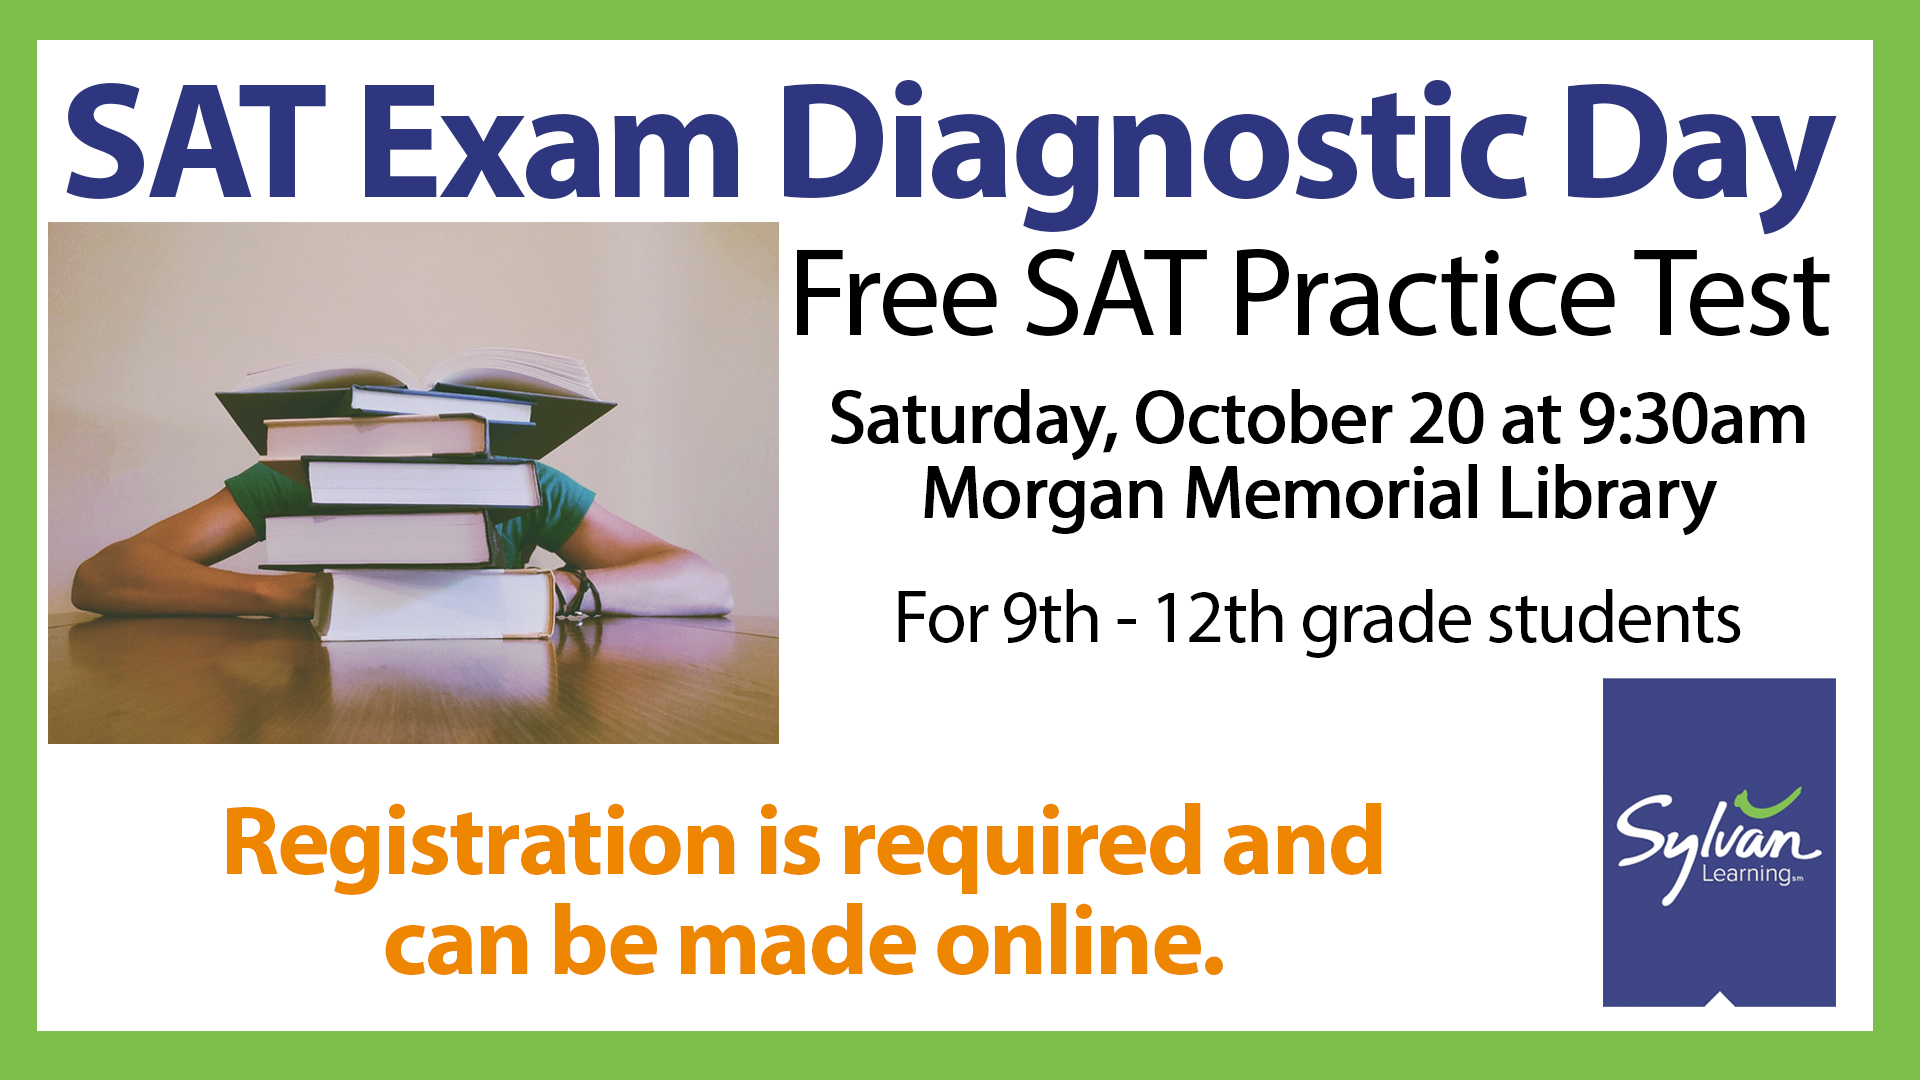 Suffolk Public Library SAT Exam Diagnostic Day